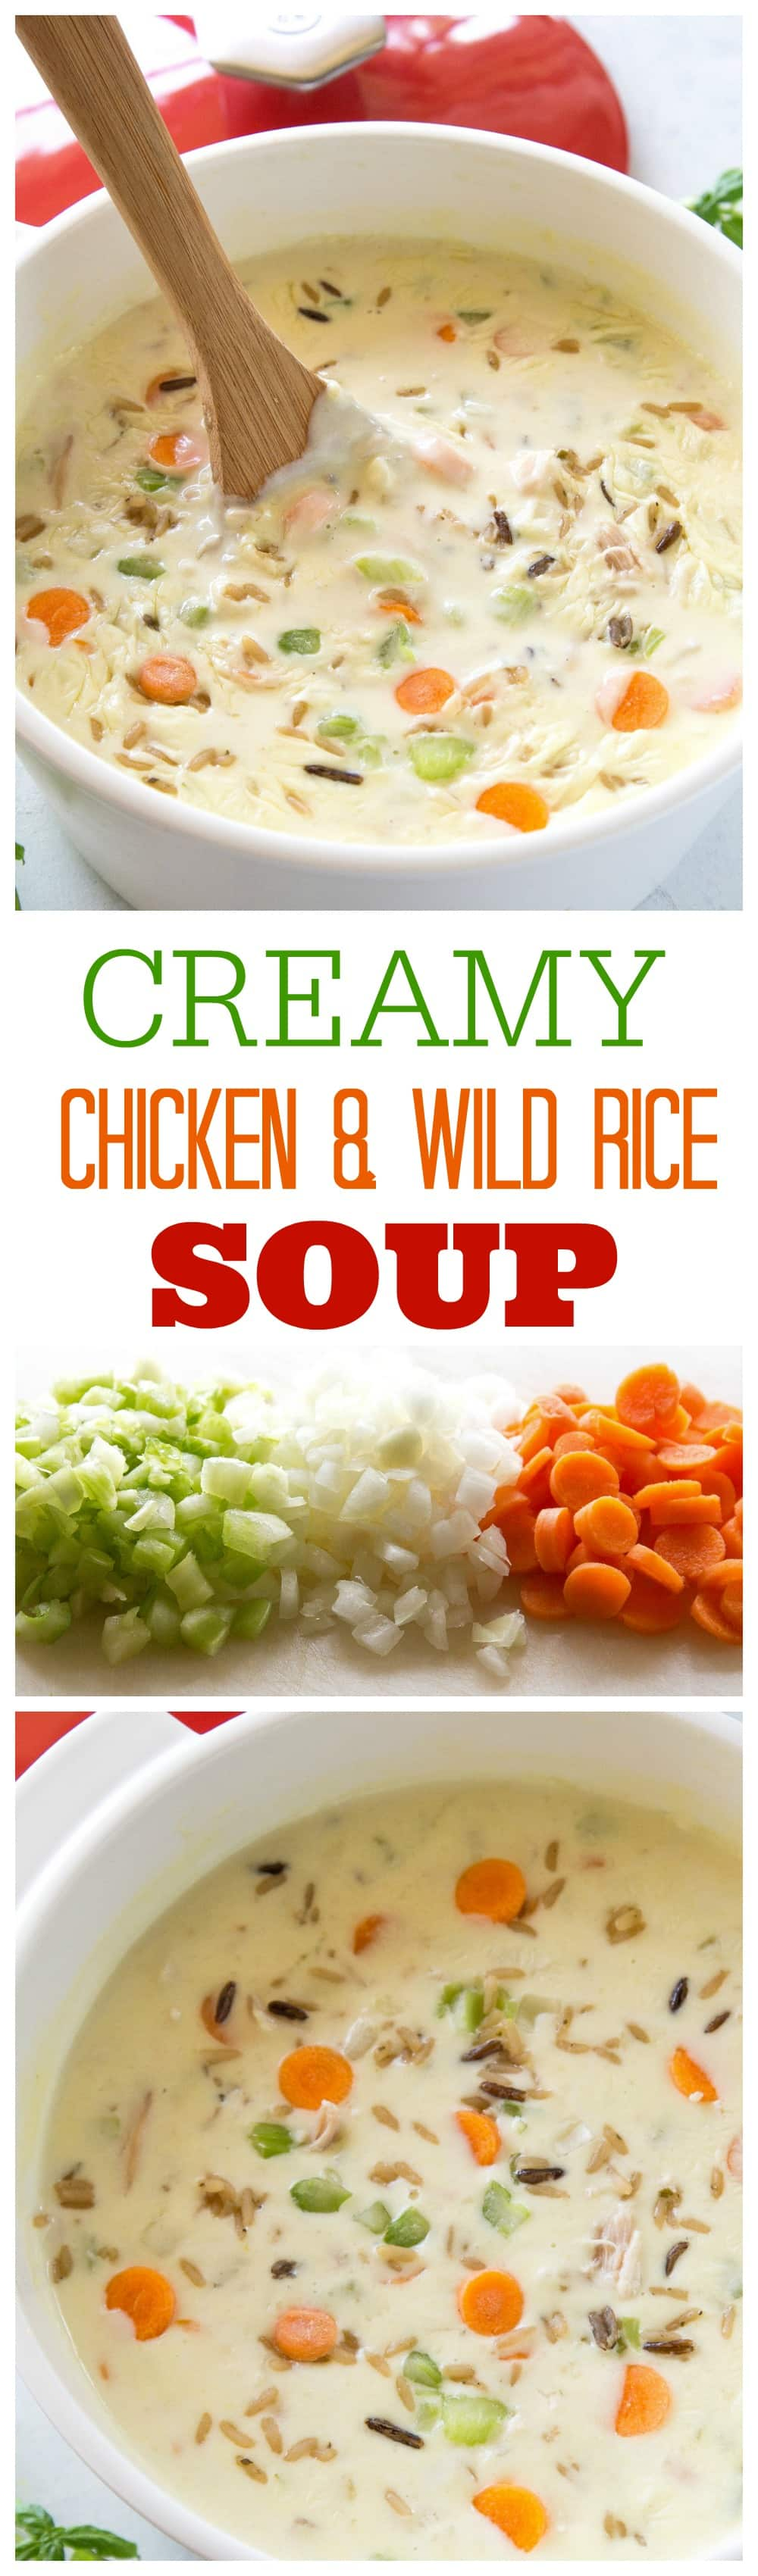 Creamy Chicken and Wild Rice Soup - nothing beats warm soup on a cold day. the-girl-who-ate-everything.com